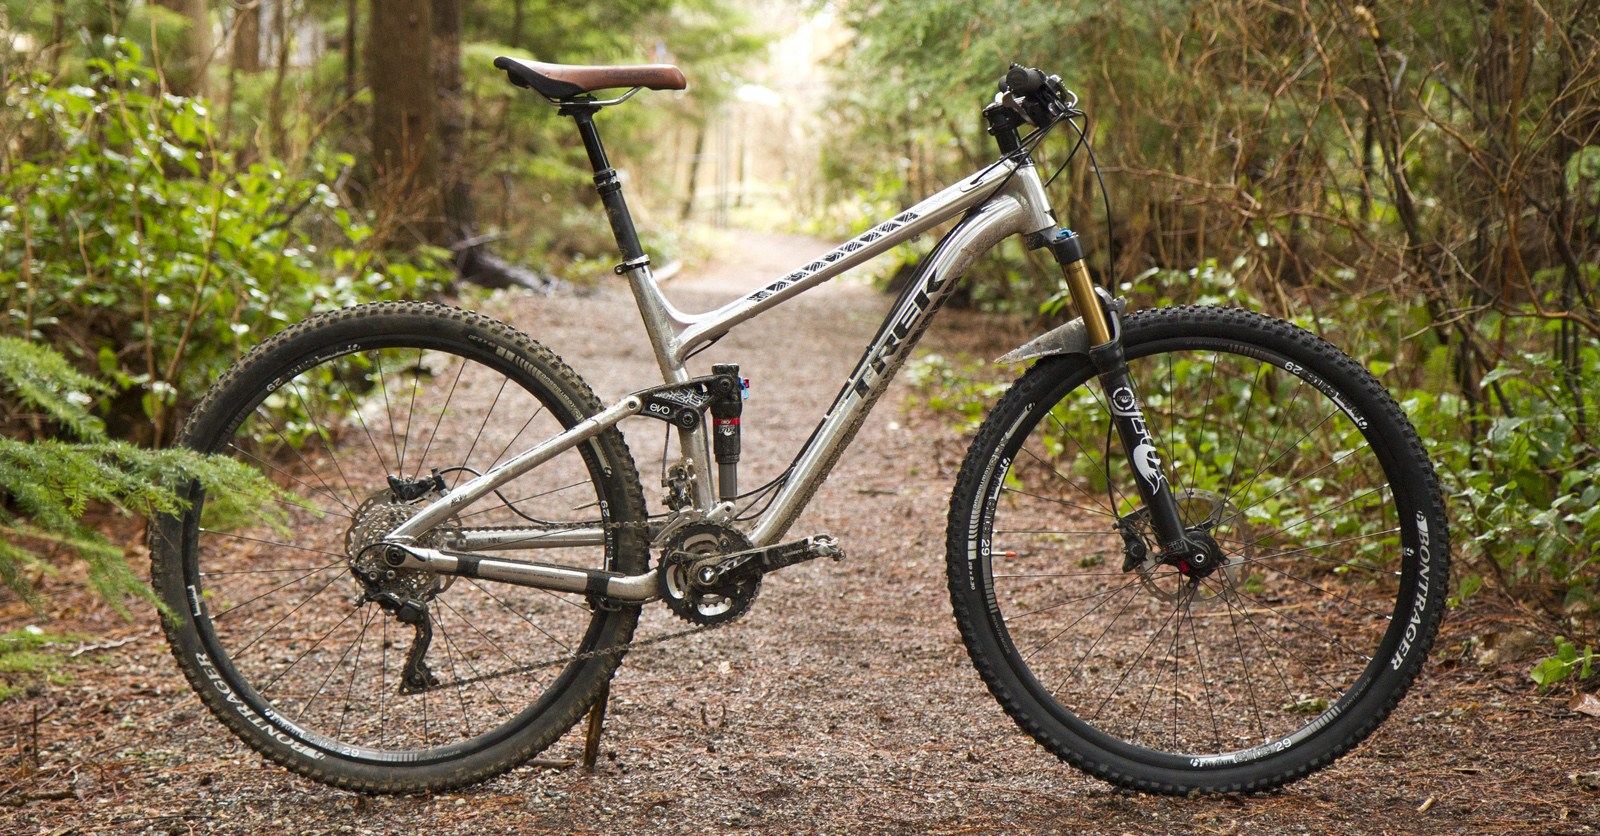 2014, Trek, Fuel, Fuel EX, 29, 29er, Remedy, Review, Bike, Mountain bike, Test